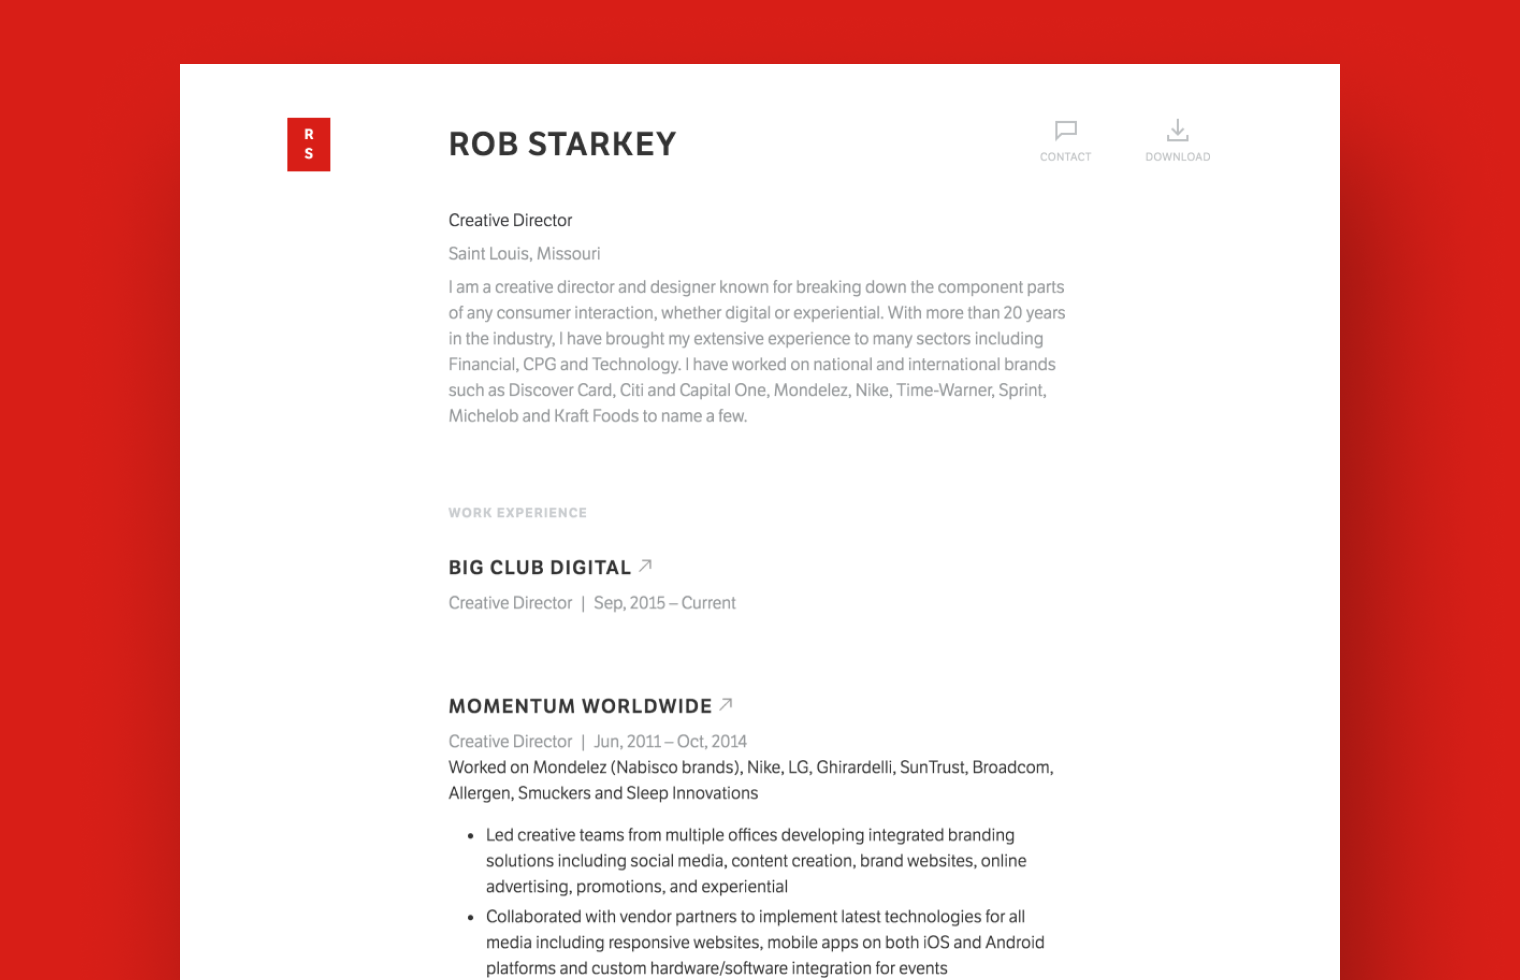 Creative Director resume example built with Standard Resume